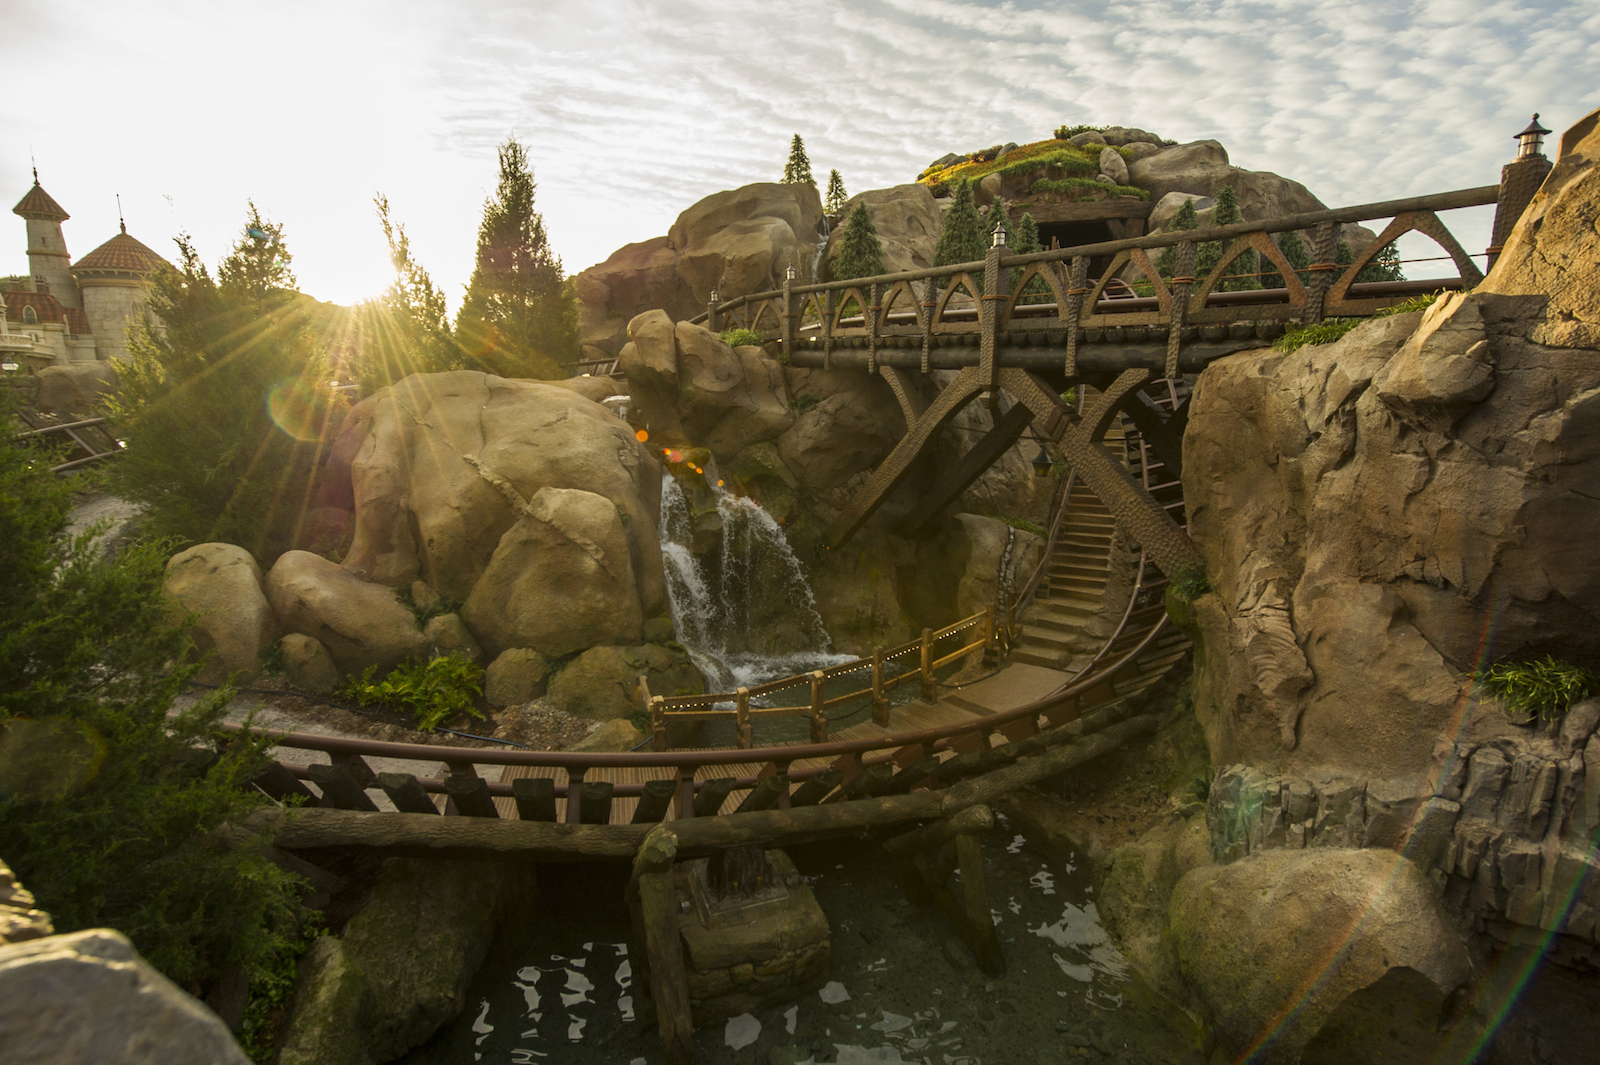 seven dwarfs mine train by vekoma best themed roller coasters blooloop